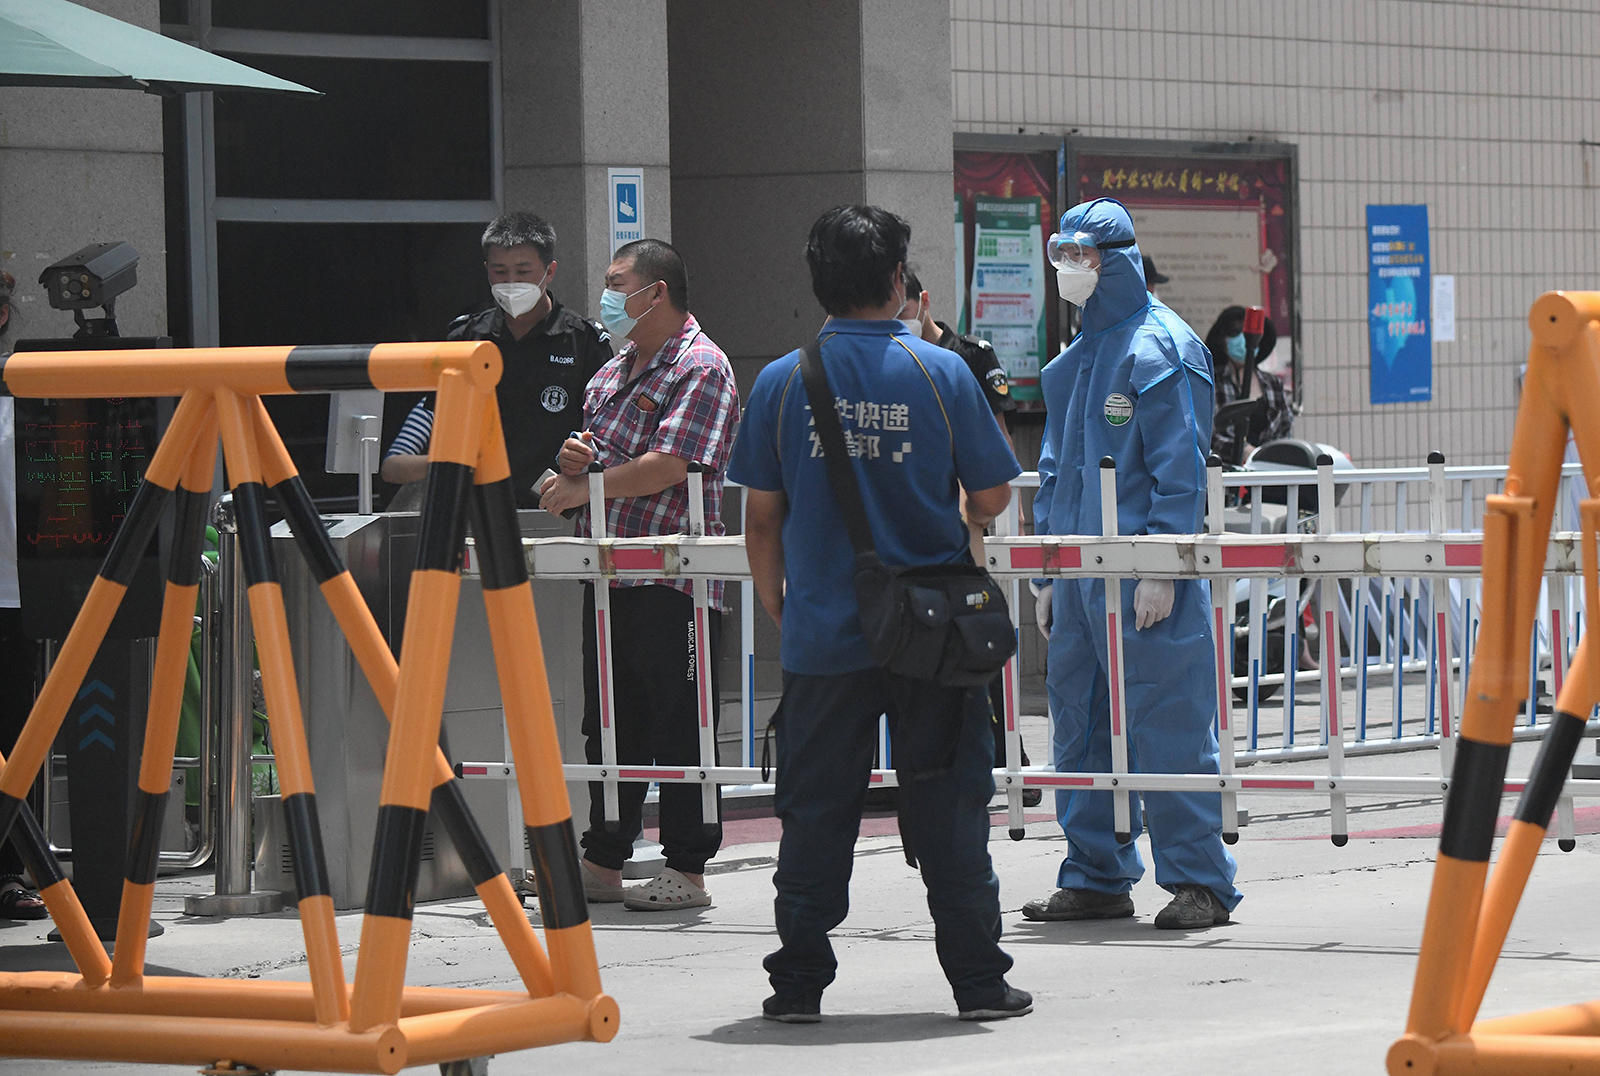 A security personnel wearing a protective suit stands guard at a residential area under lockdown near Yuquan East Market in Beijing on June 15.